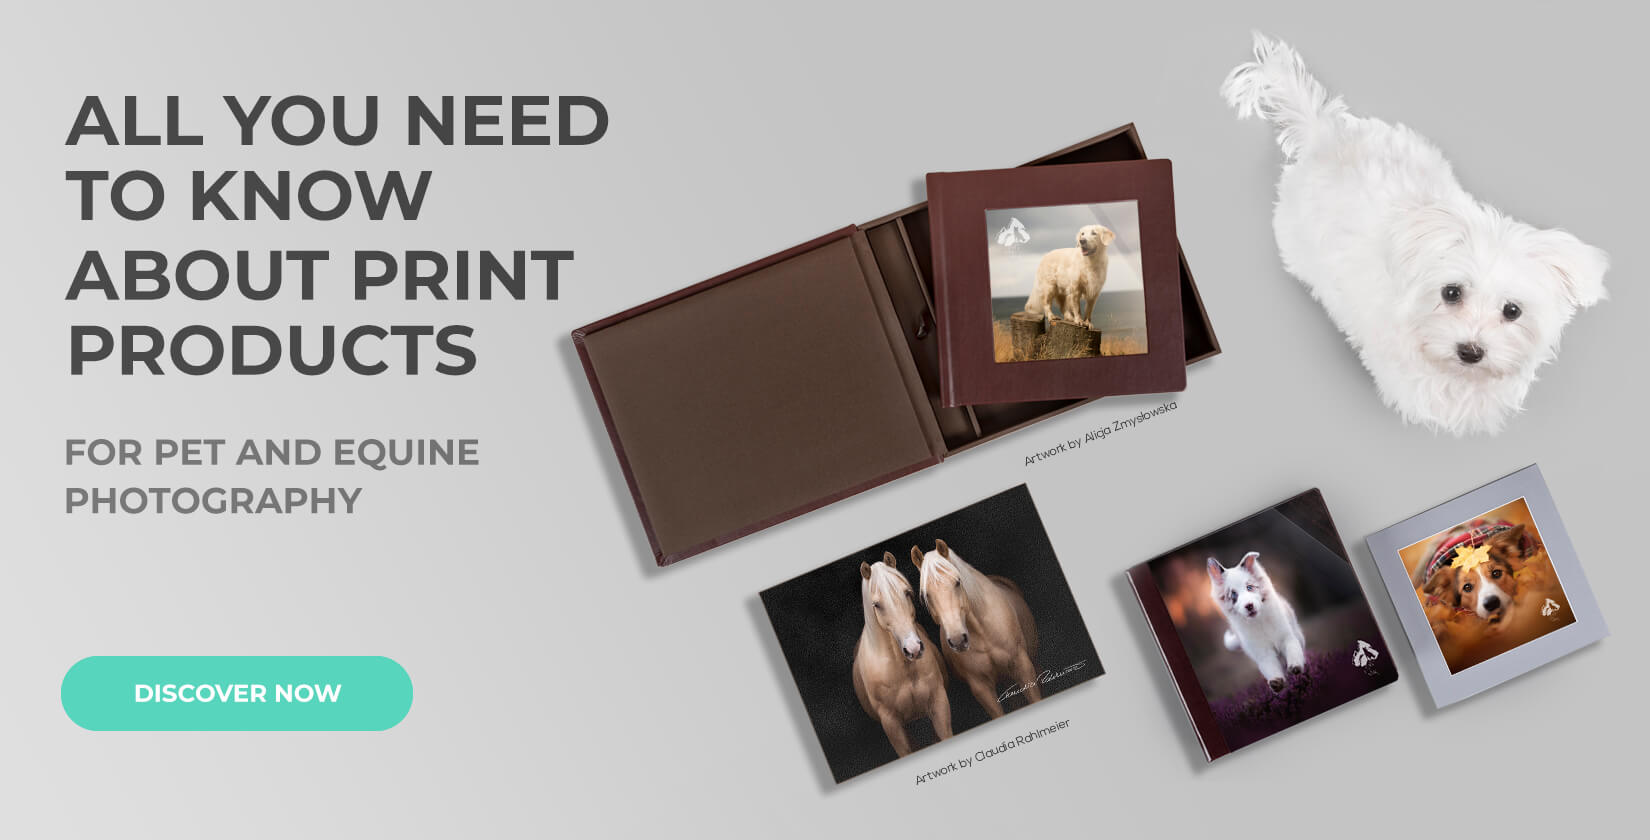 pet photography business professional photo products